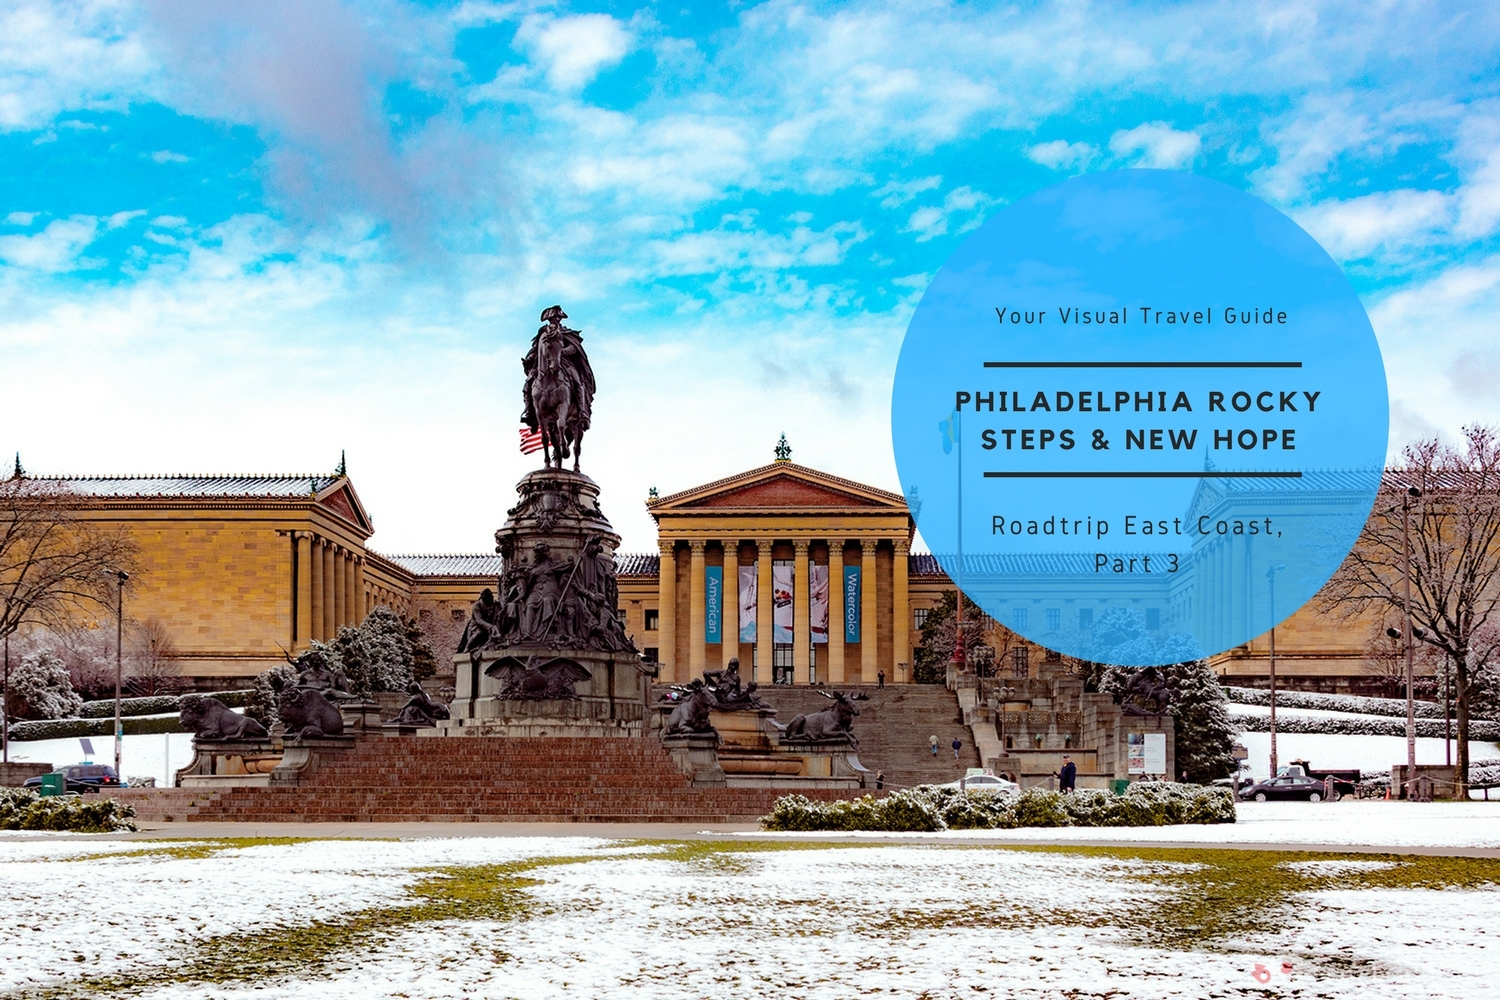 Roadtrip USA East Coast (3) Philadelphia Rocky Steps & New Hope